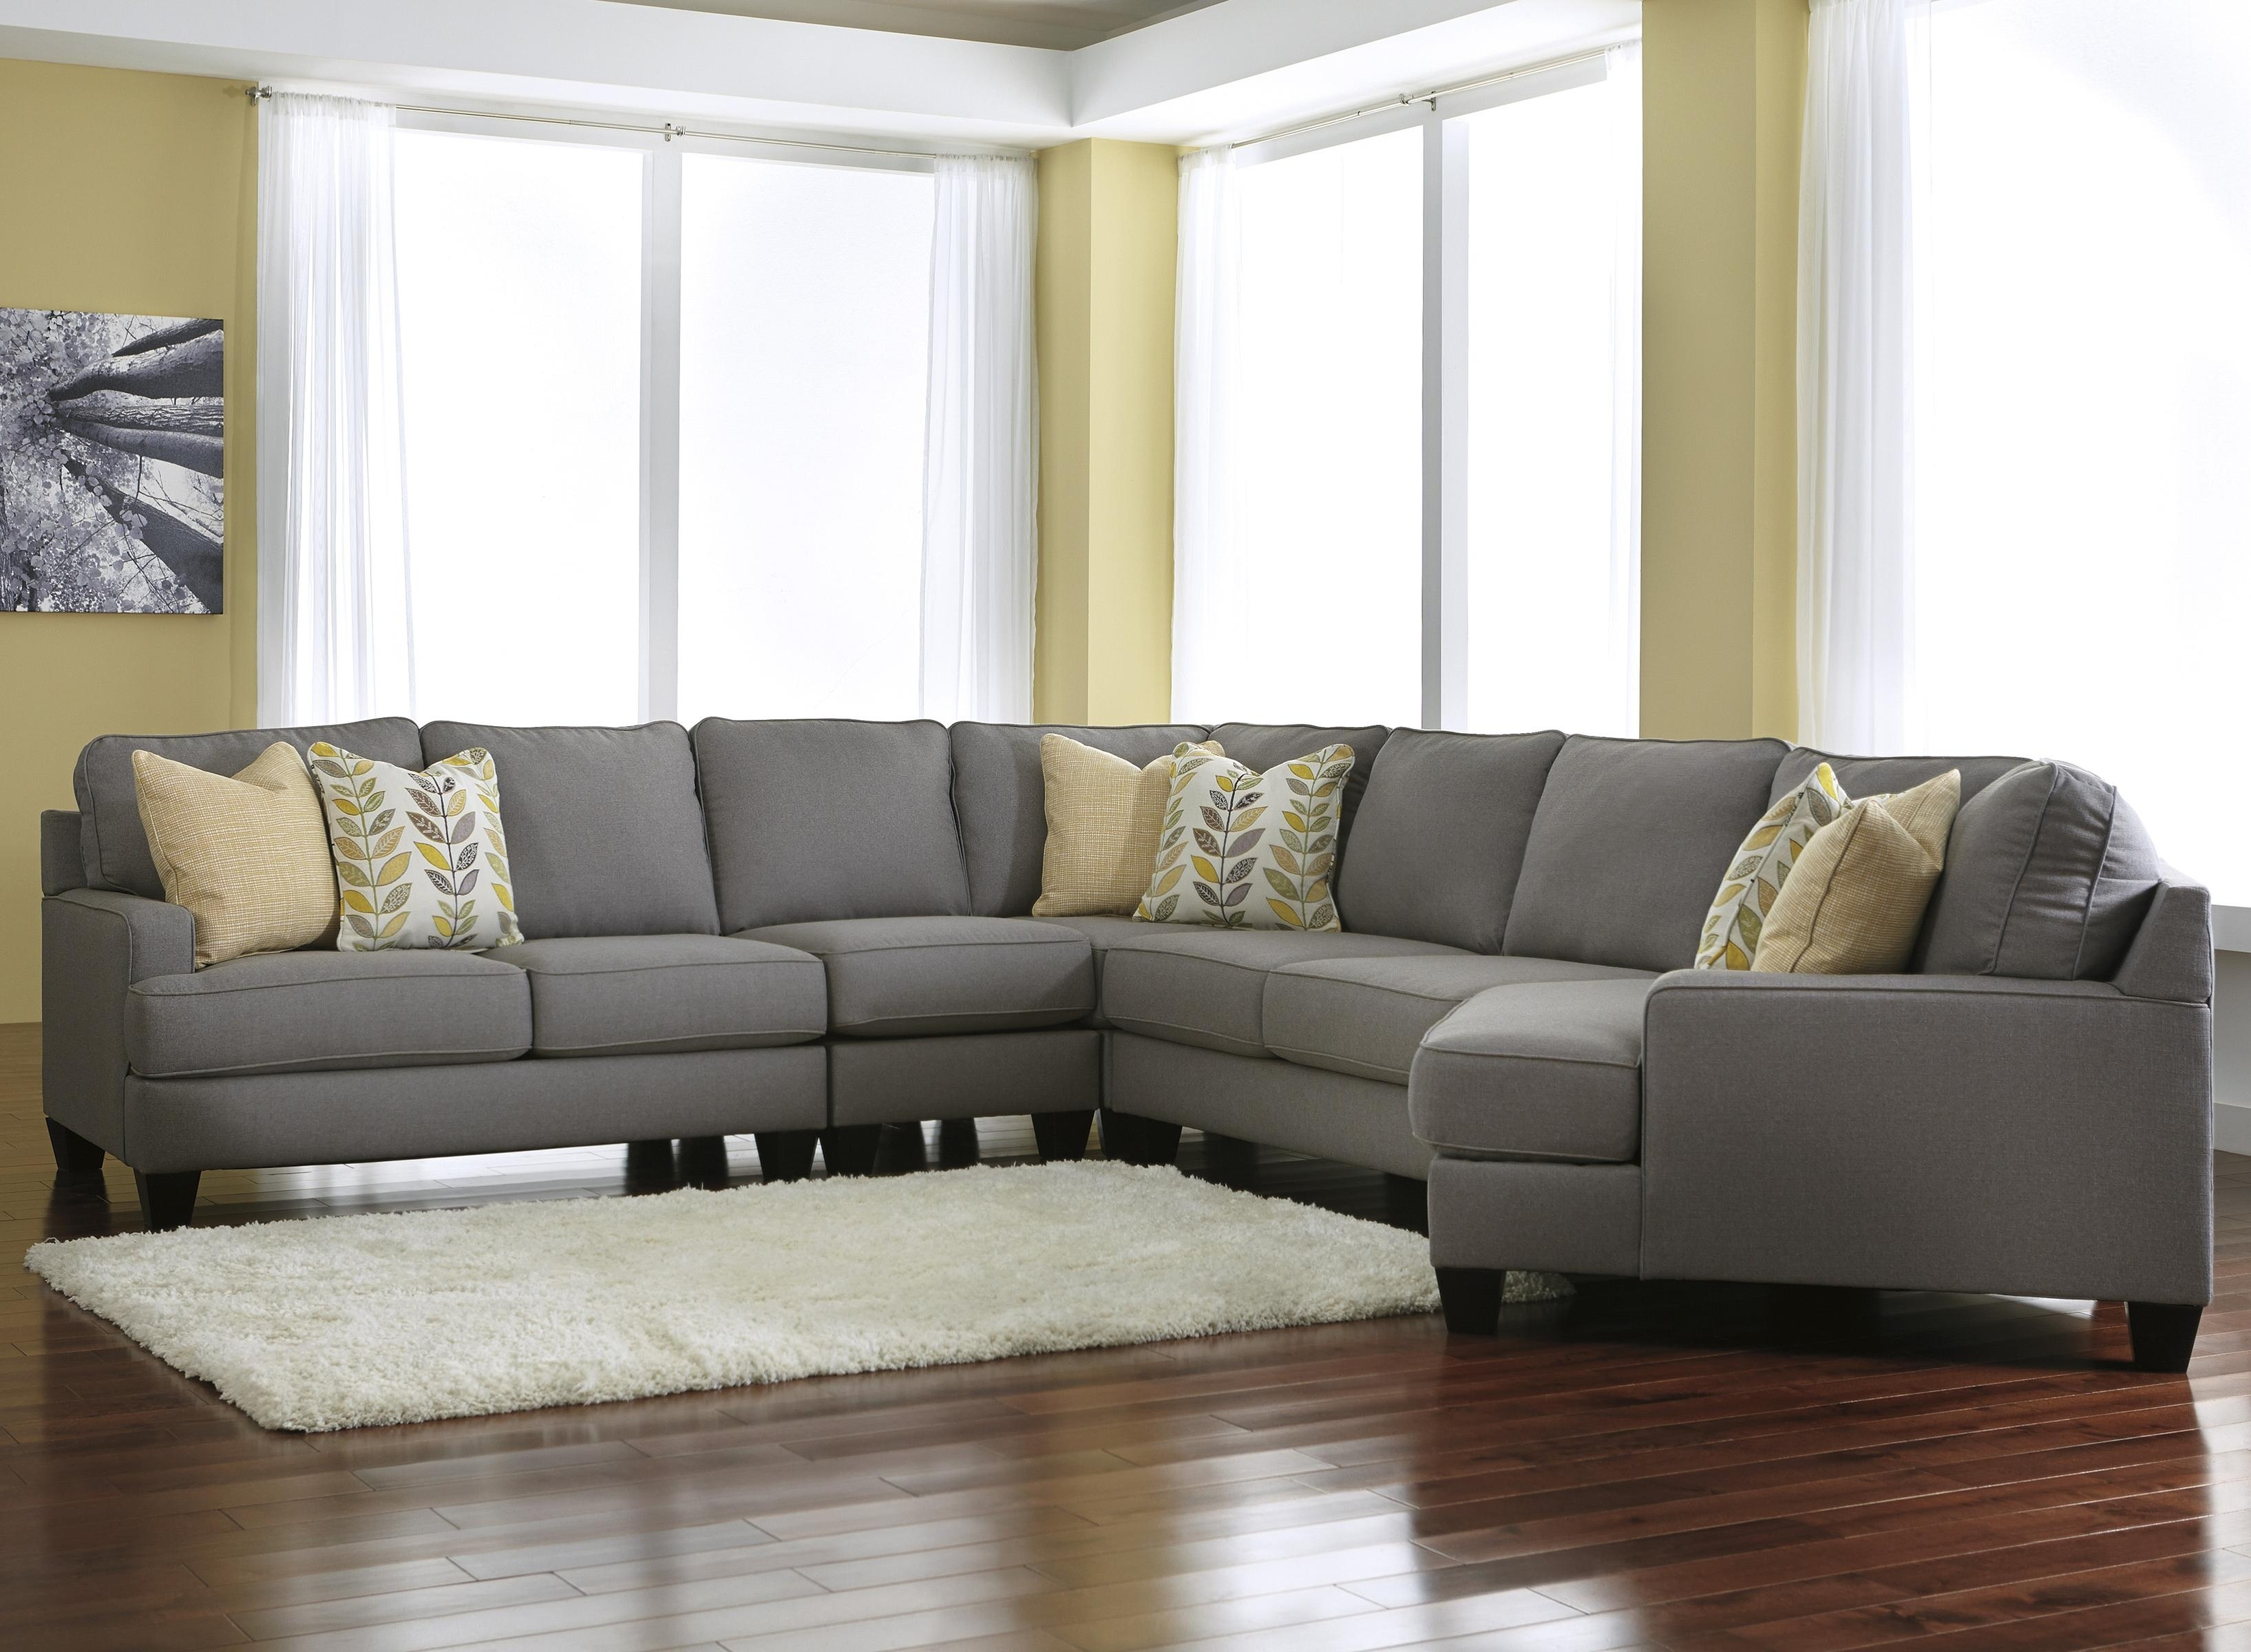 Chamberly – Alloy 5 Piece Sectional Sofa With Right Cuddler Intended For Eau Claire Wi Sectional Sofas (View 2 of 10)